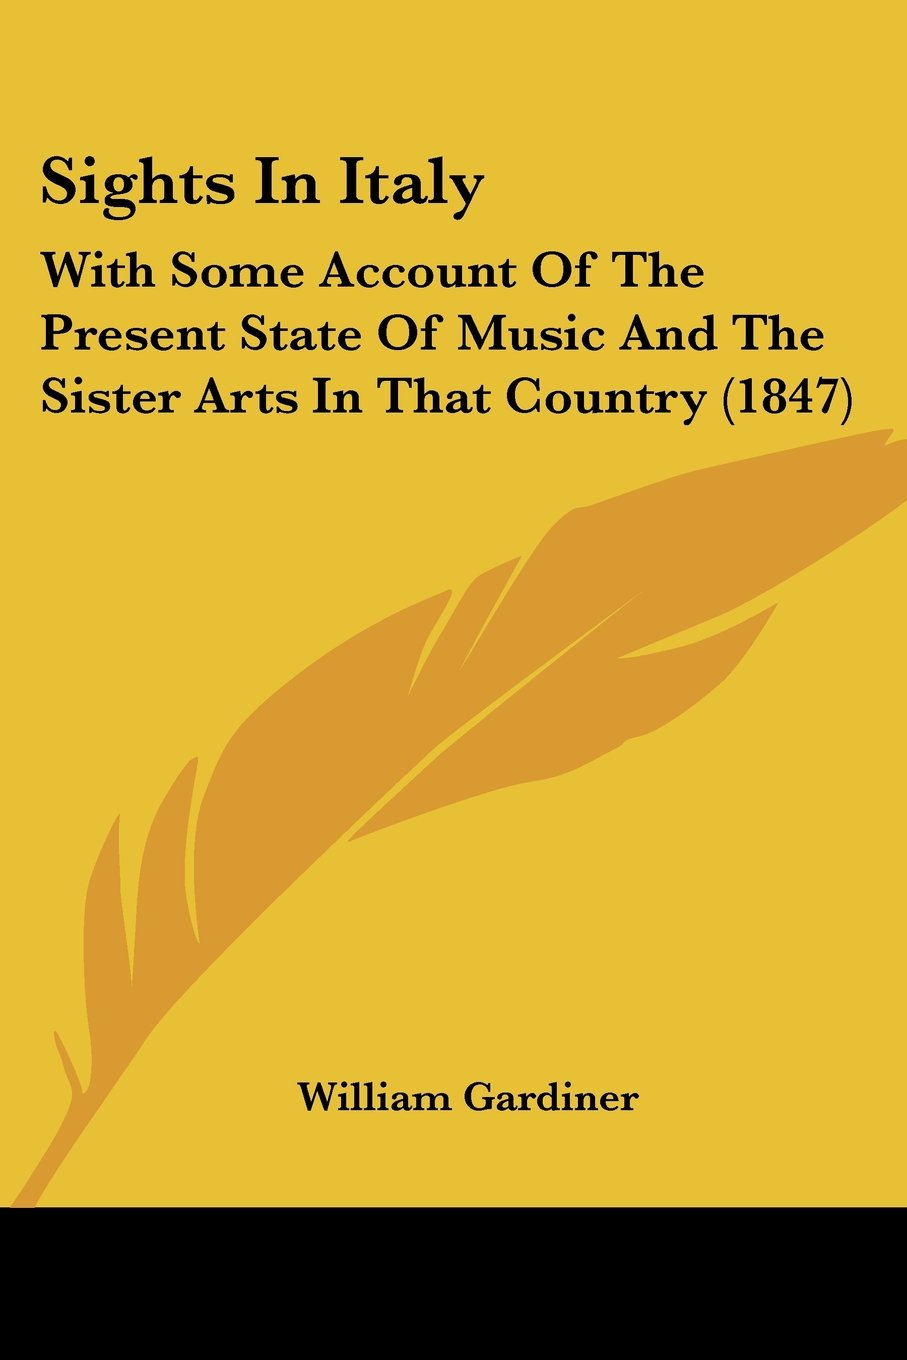 Download Sights In Italy: With Some Account Of The Present State Of Music And The Sister Arts In That Country (1847) PDF